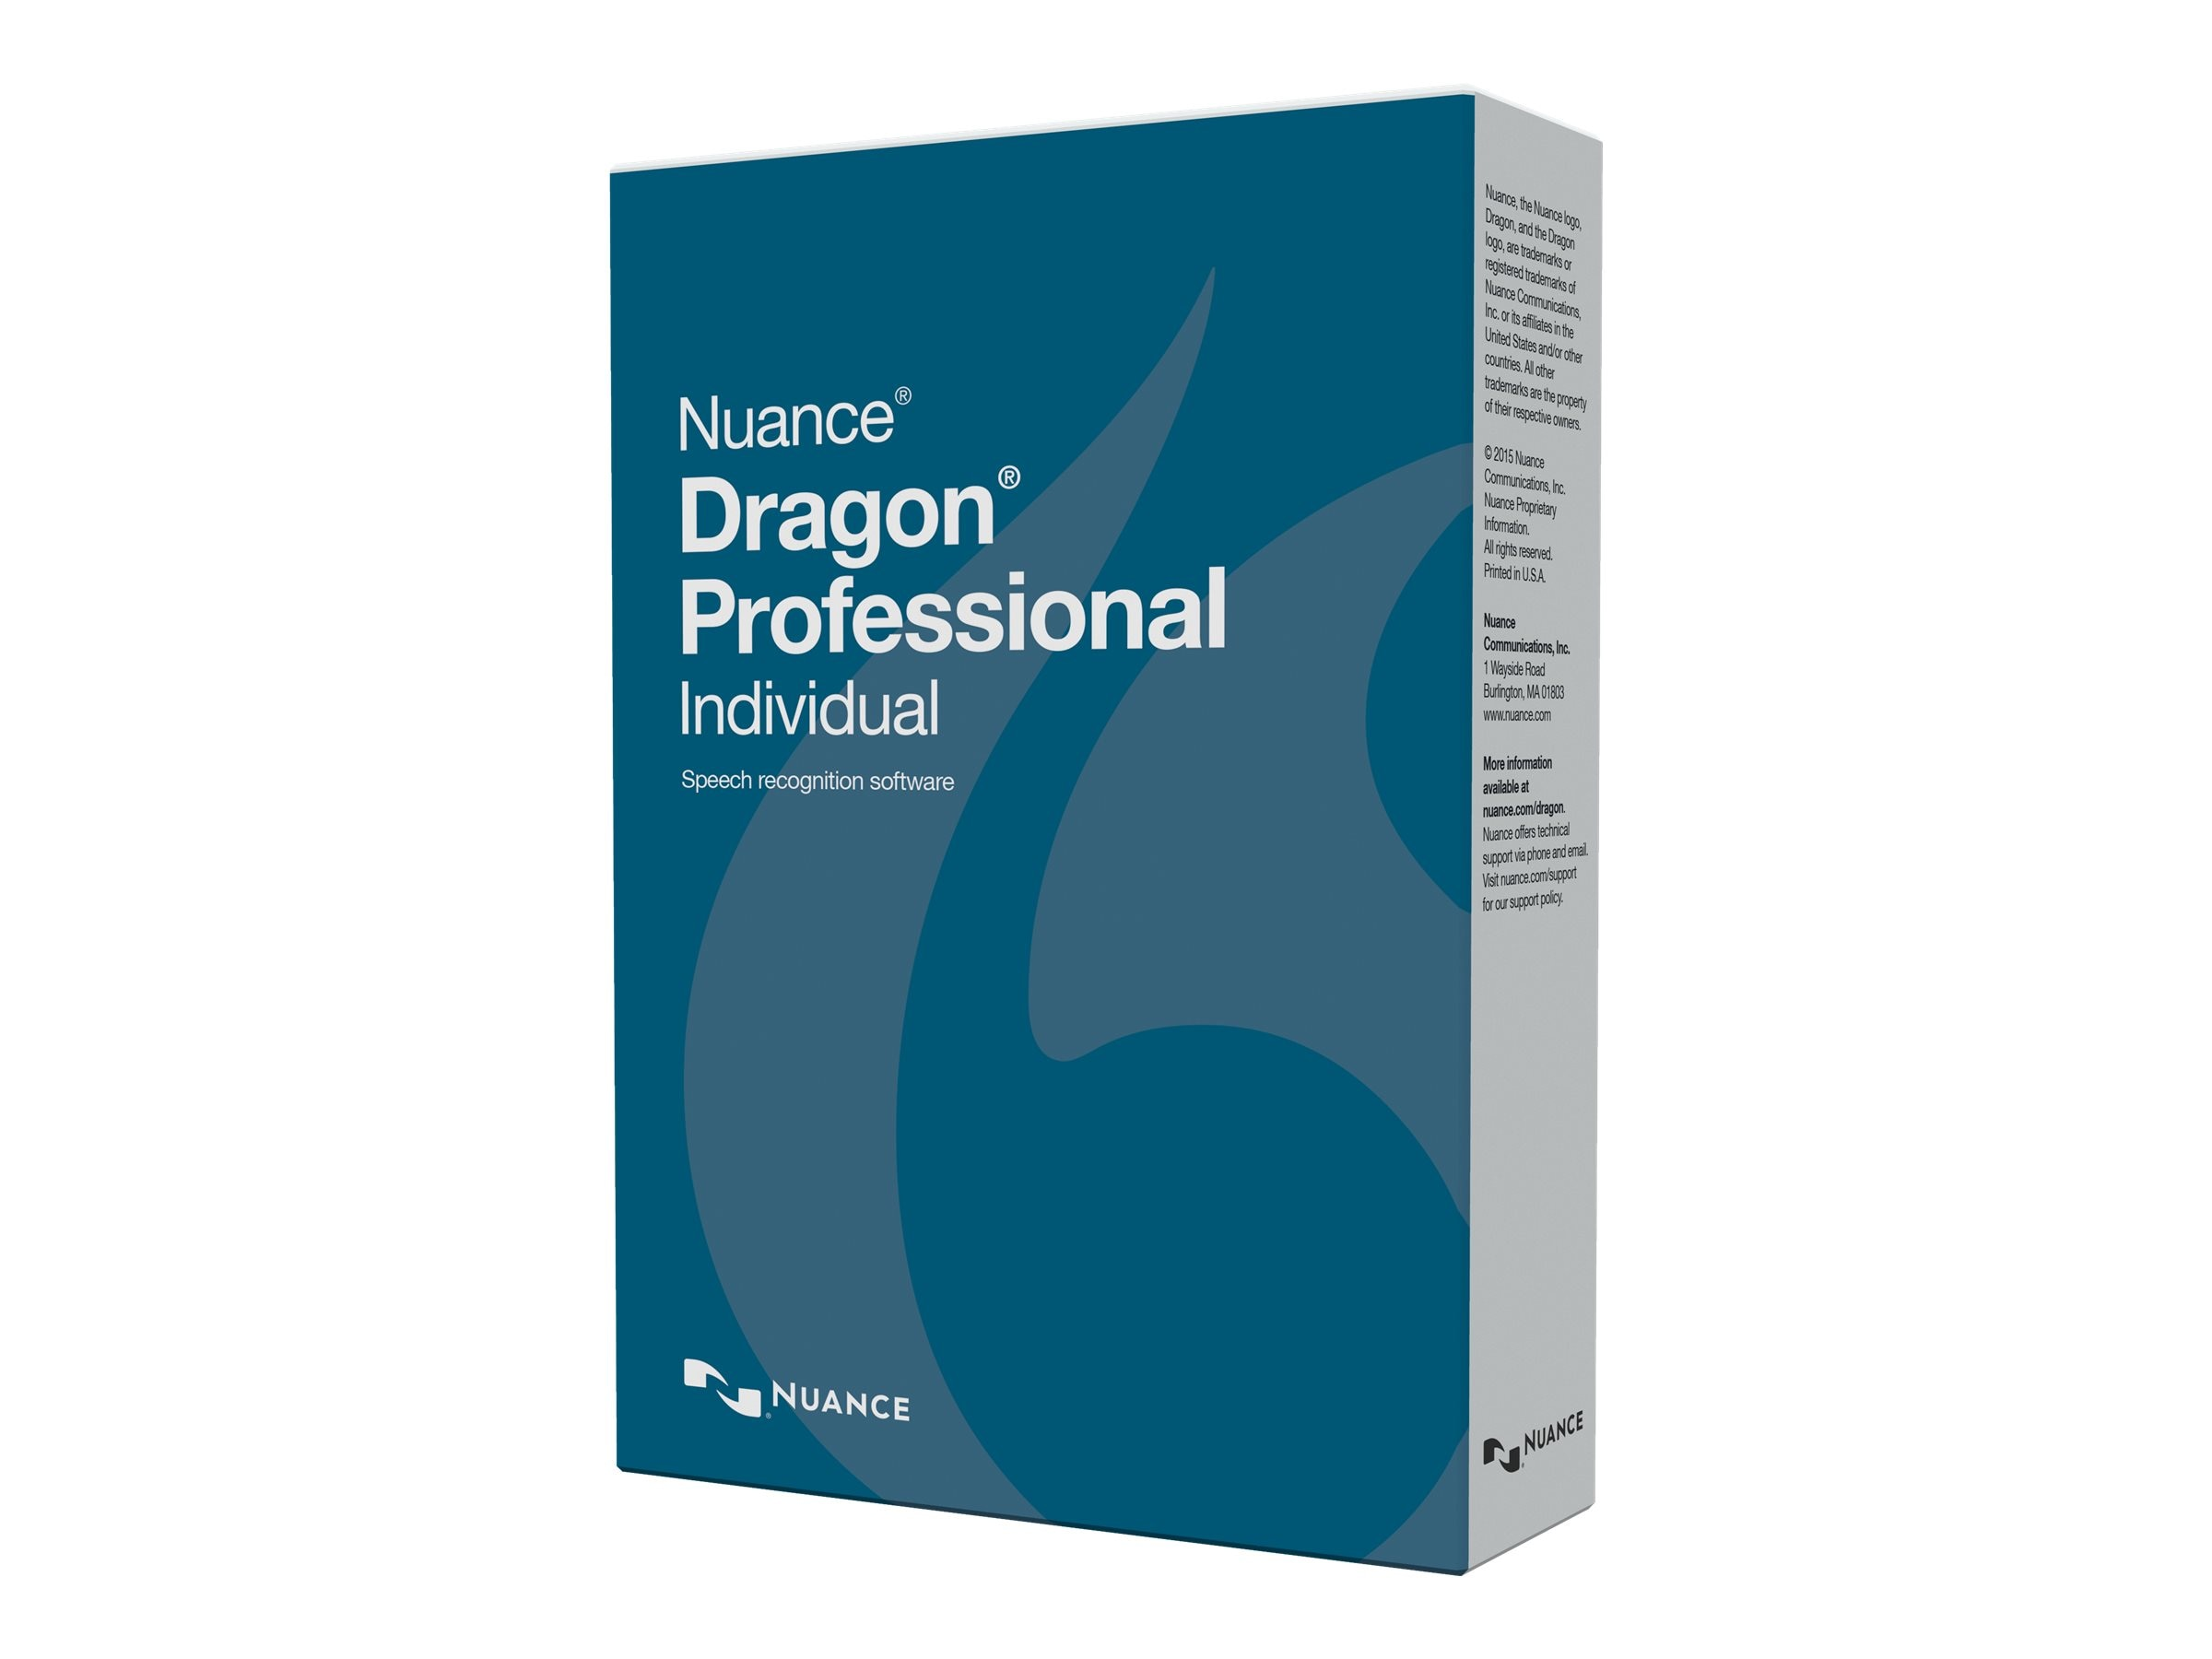 Nuance Dragon Professional Individual - English with Bluetooth Headset